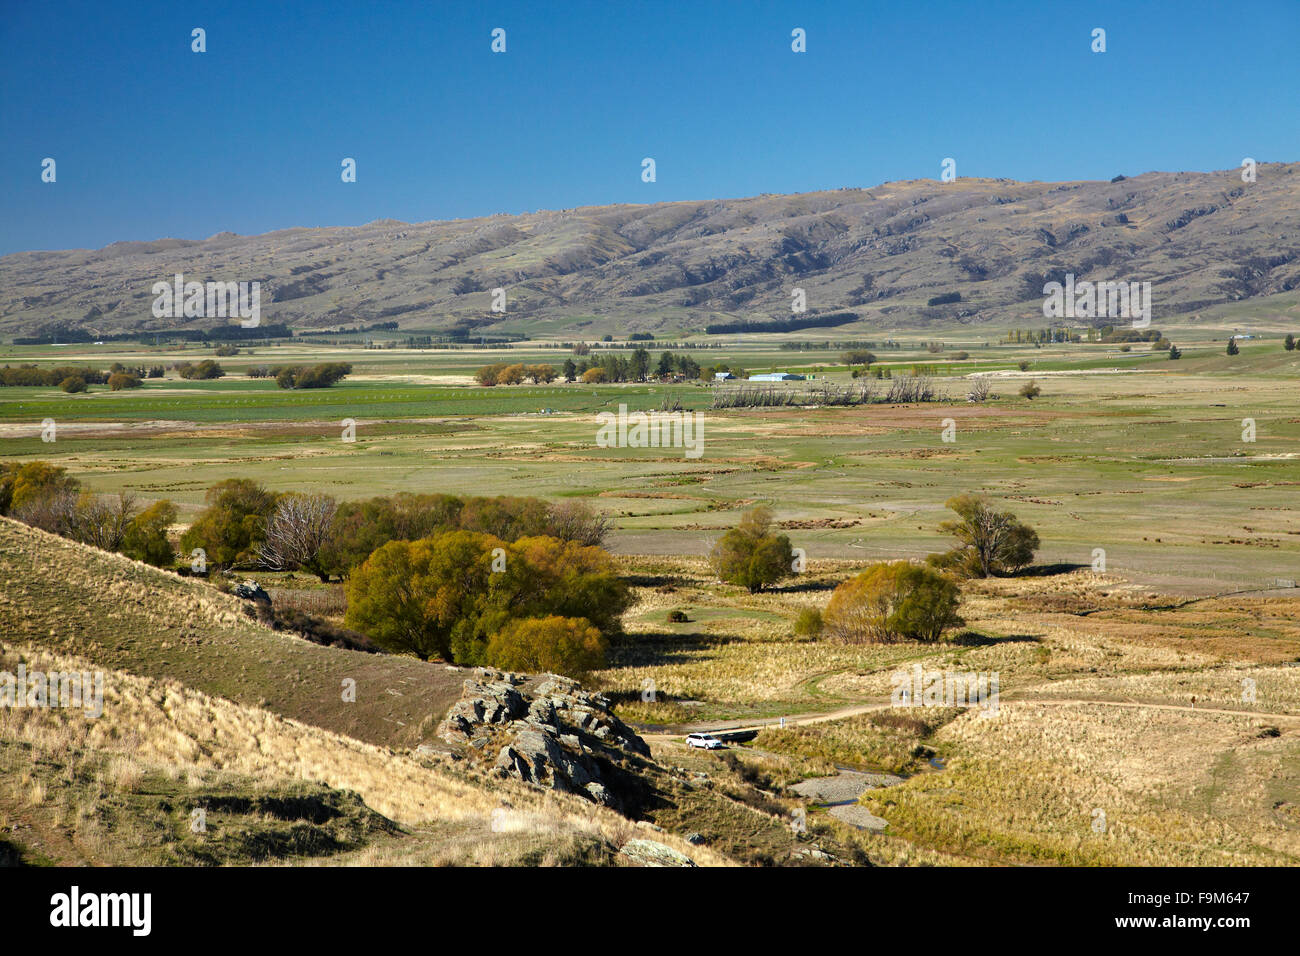 Ida Valley, viewed from Otago Central Rail Trail, Maniototo, Central Otago, South Island, New Zealand - Stock Image